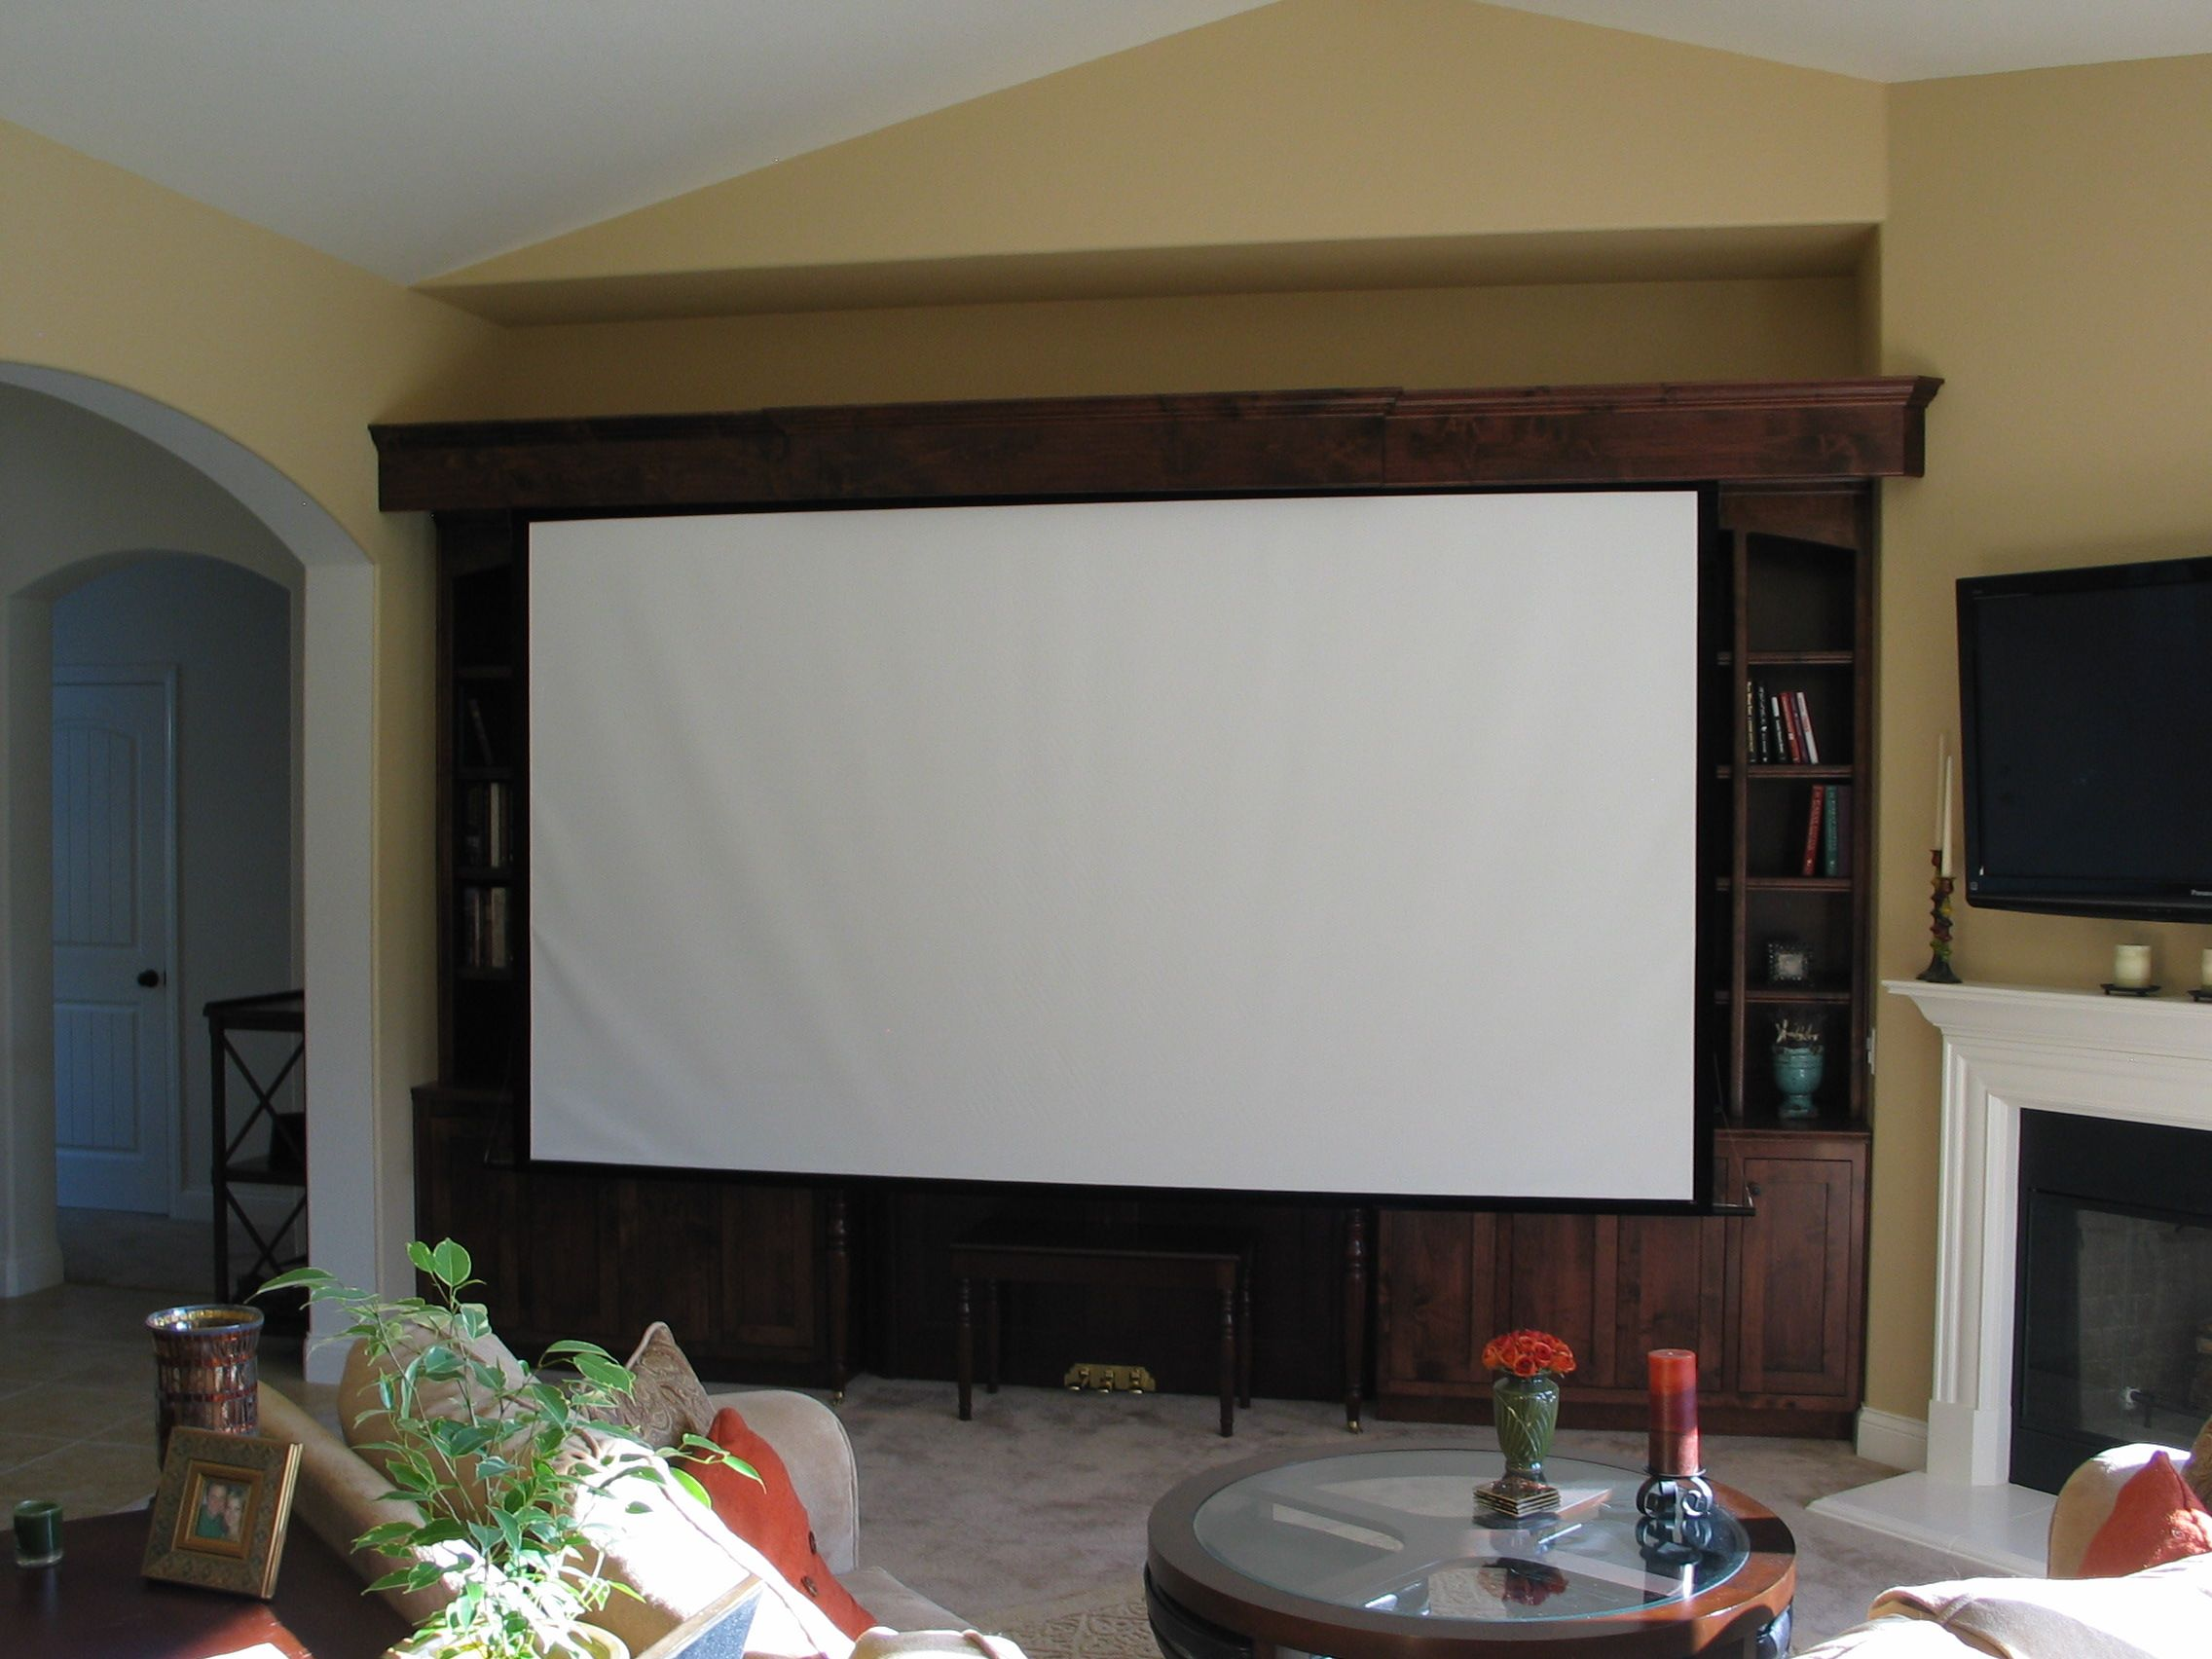 Giant Projector Screen In Entertainment Center Elderly Home Home Buying Living Room Remodel